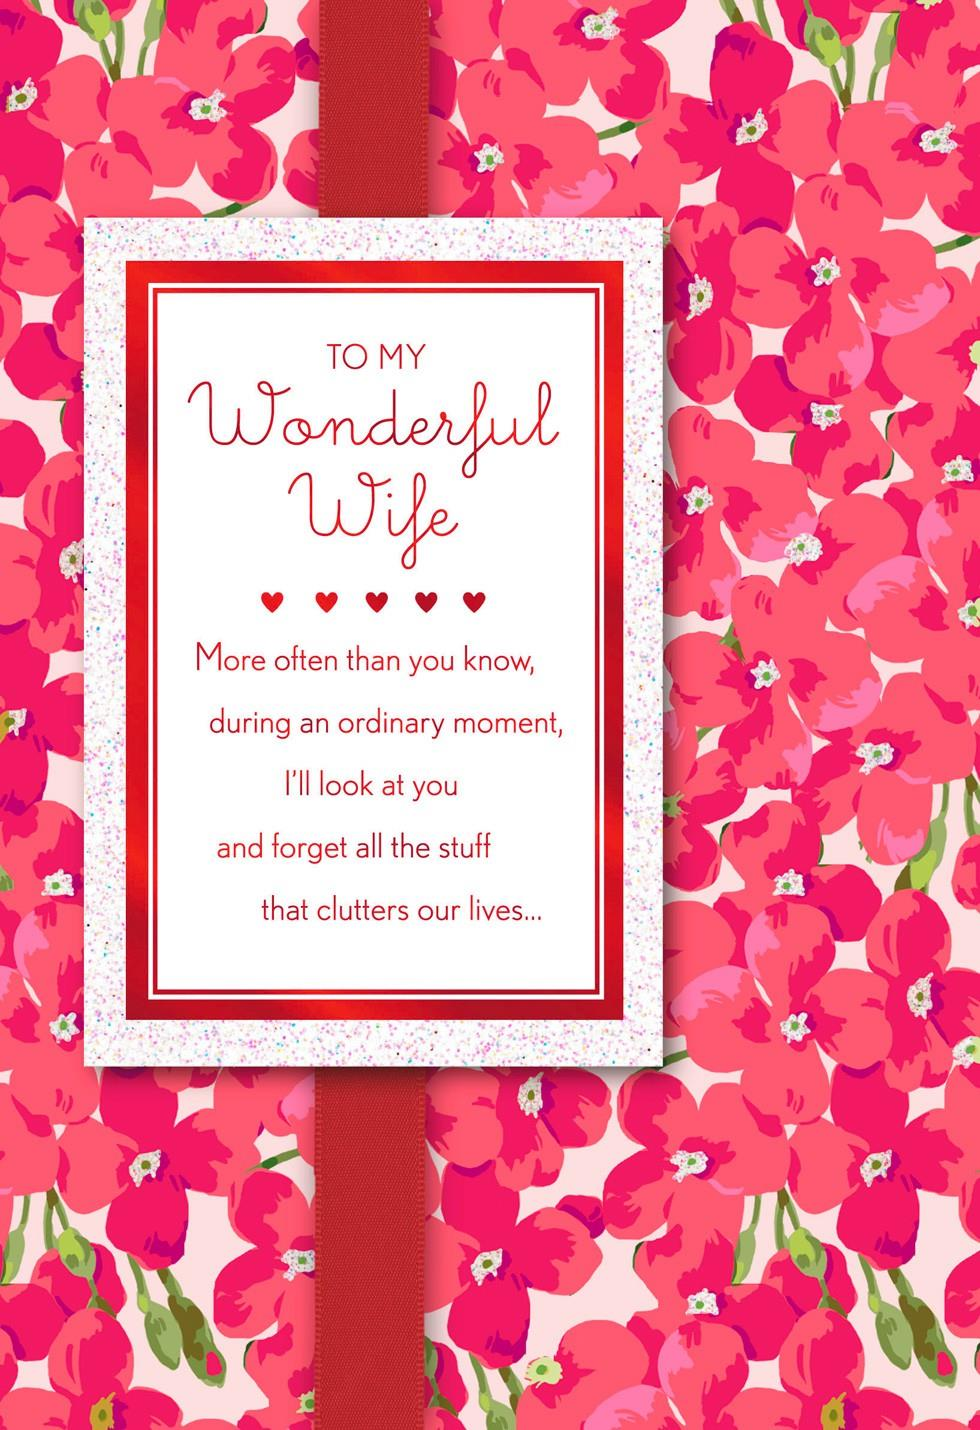 Pink Flowers Valentines Day Card for Wife Greeting Cards Hallmark – Hallmark Valentine Cards